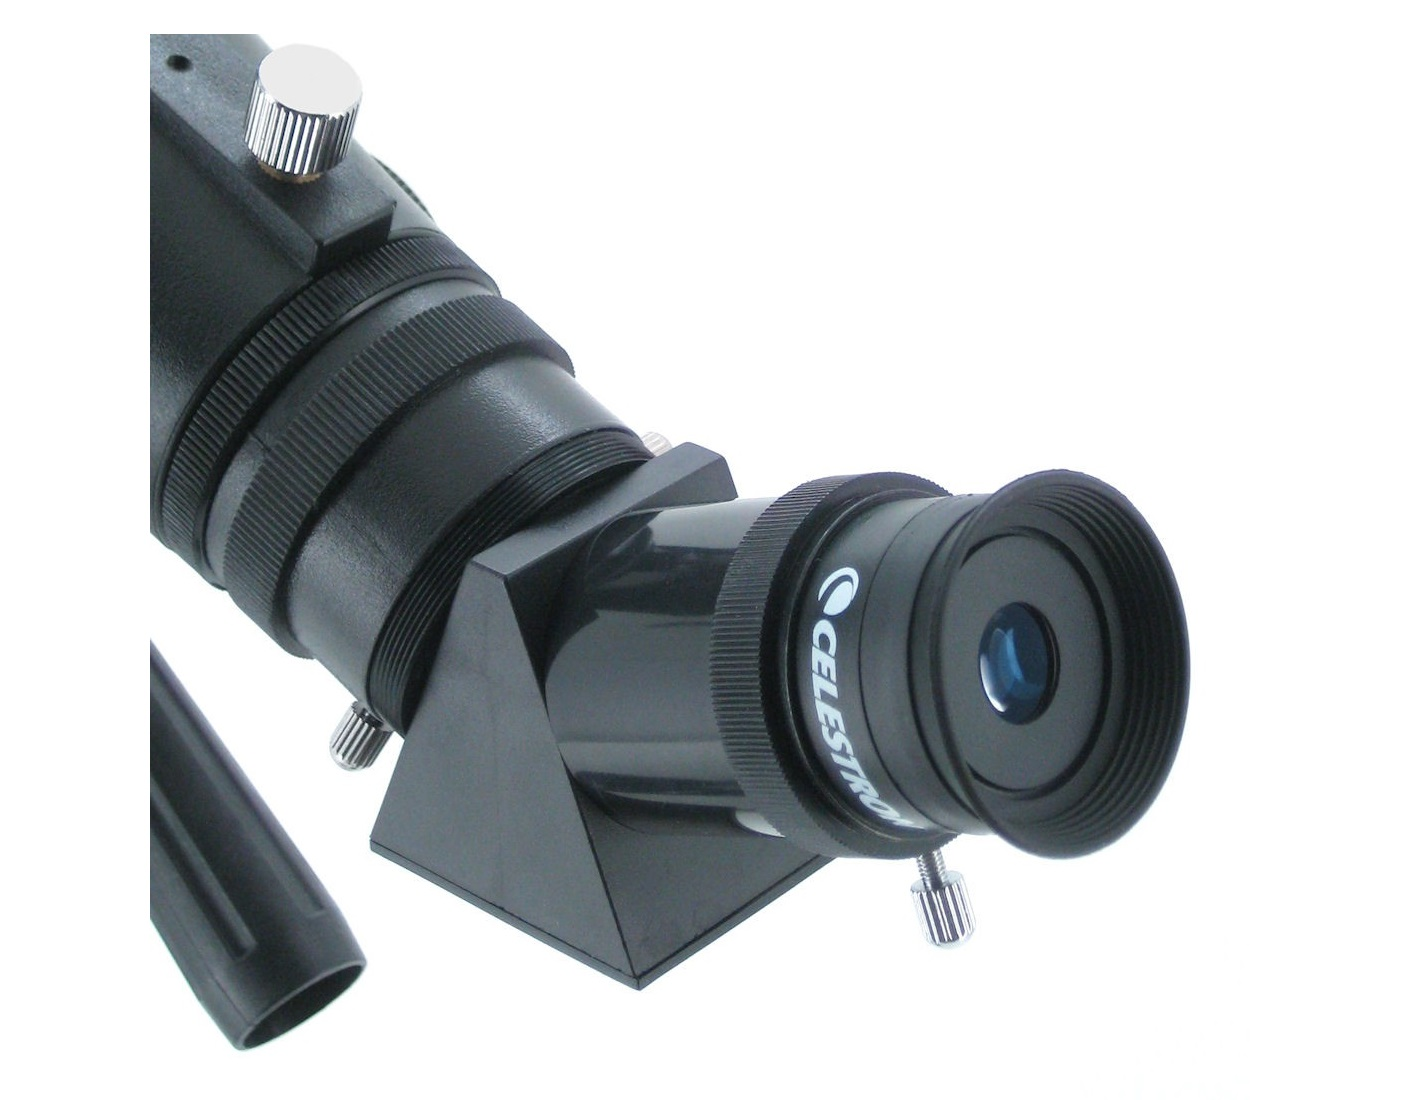 Celestron travel telescope compact offered in vgc cash on